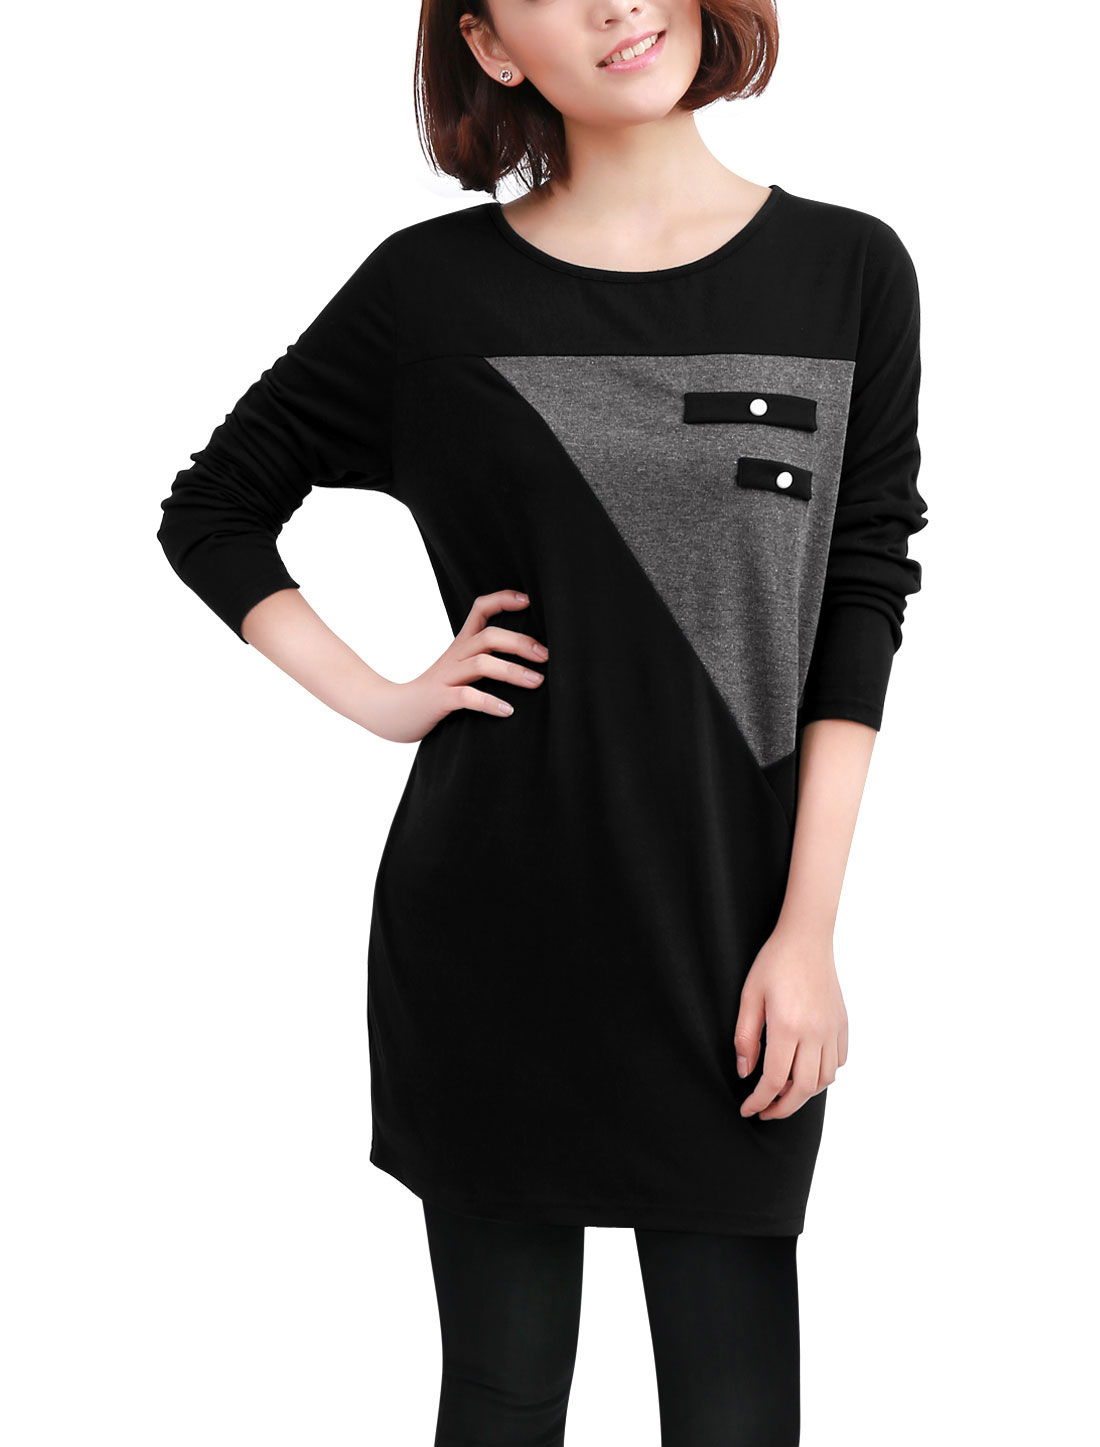 Lady Black Long Sleeve Buttons Decor Front Design Loose Tunic Shirt M